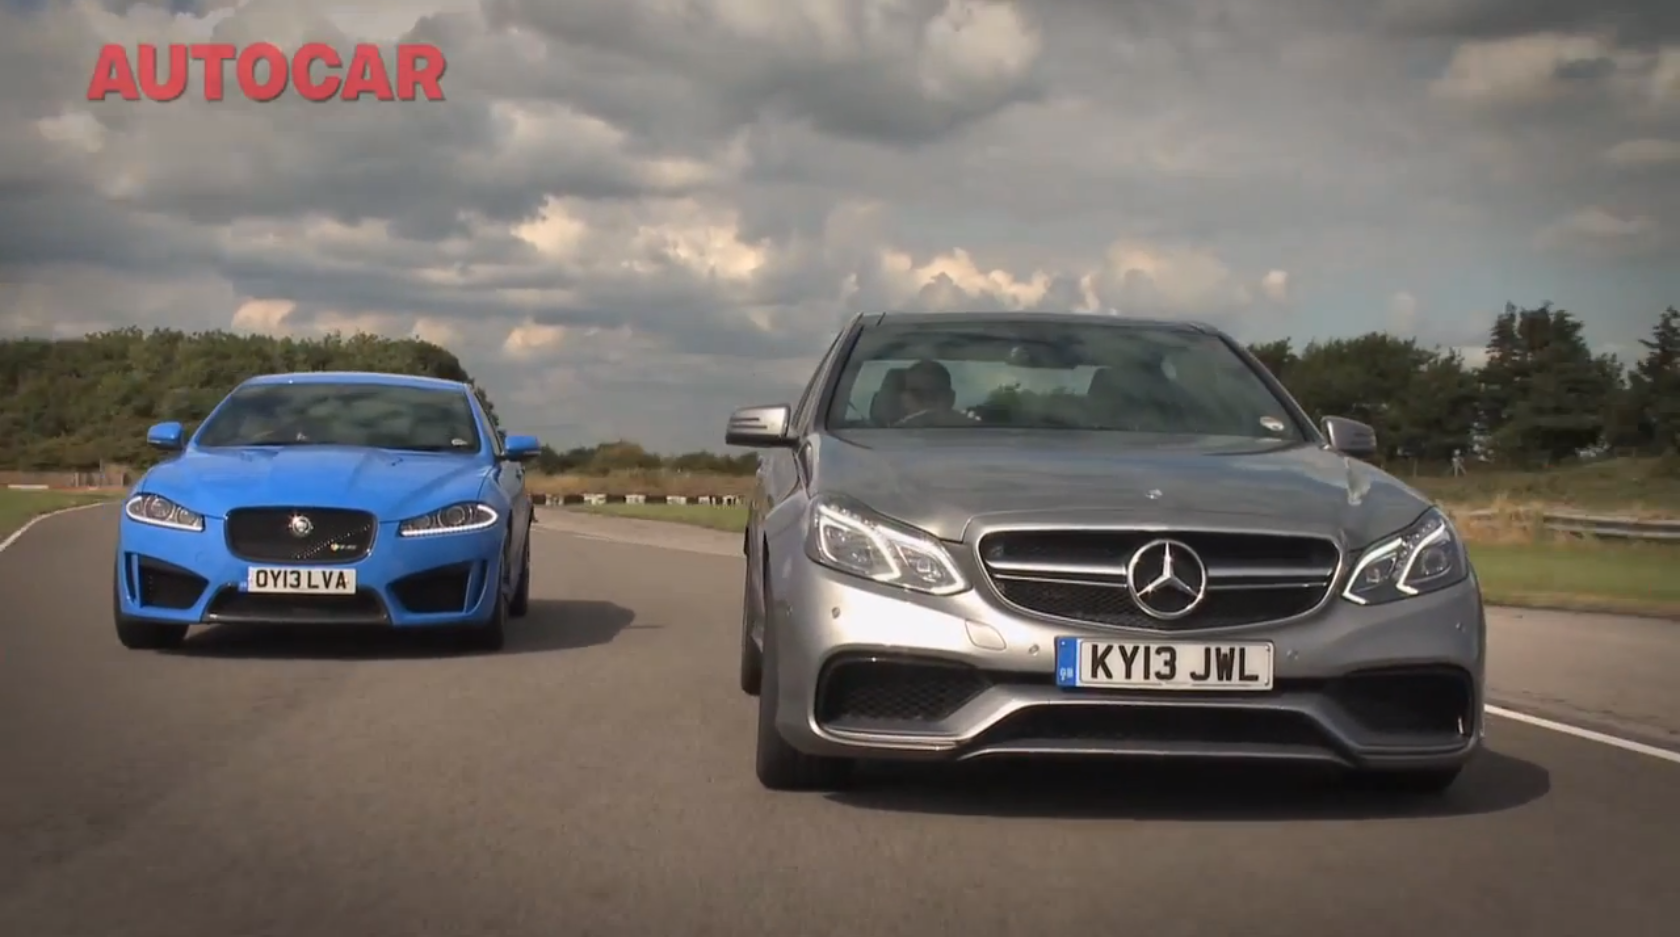 mercedes benz e 63 amg vs jaguar xfr s by autocar